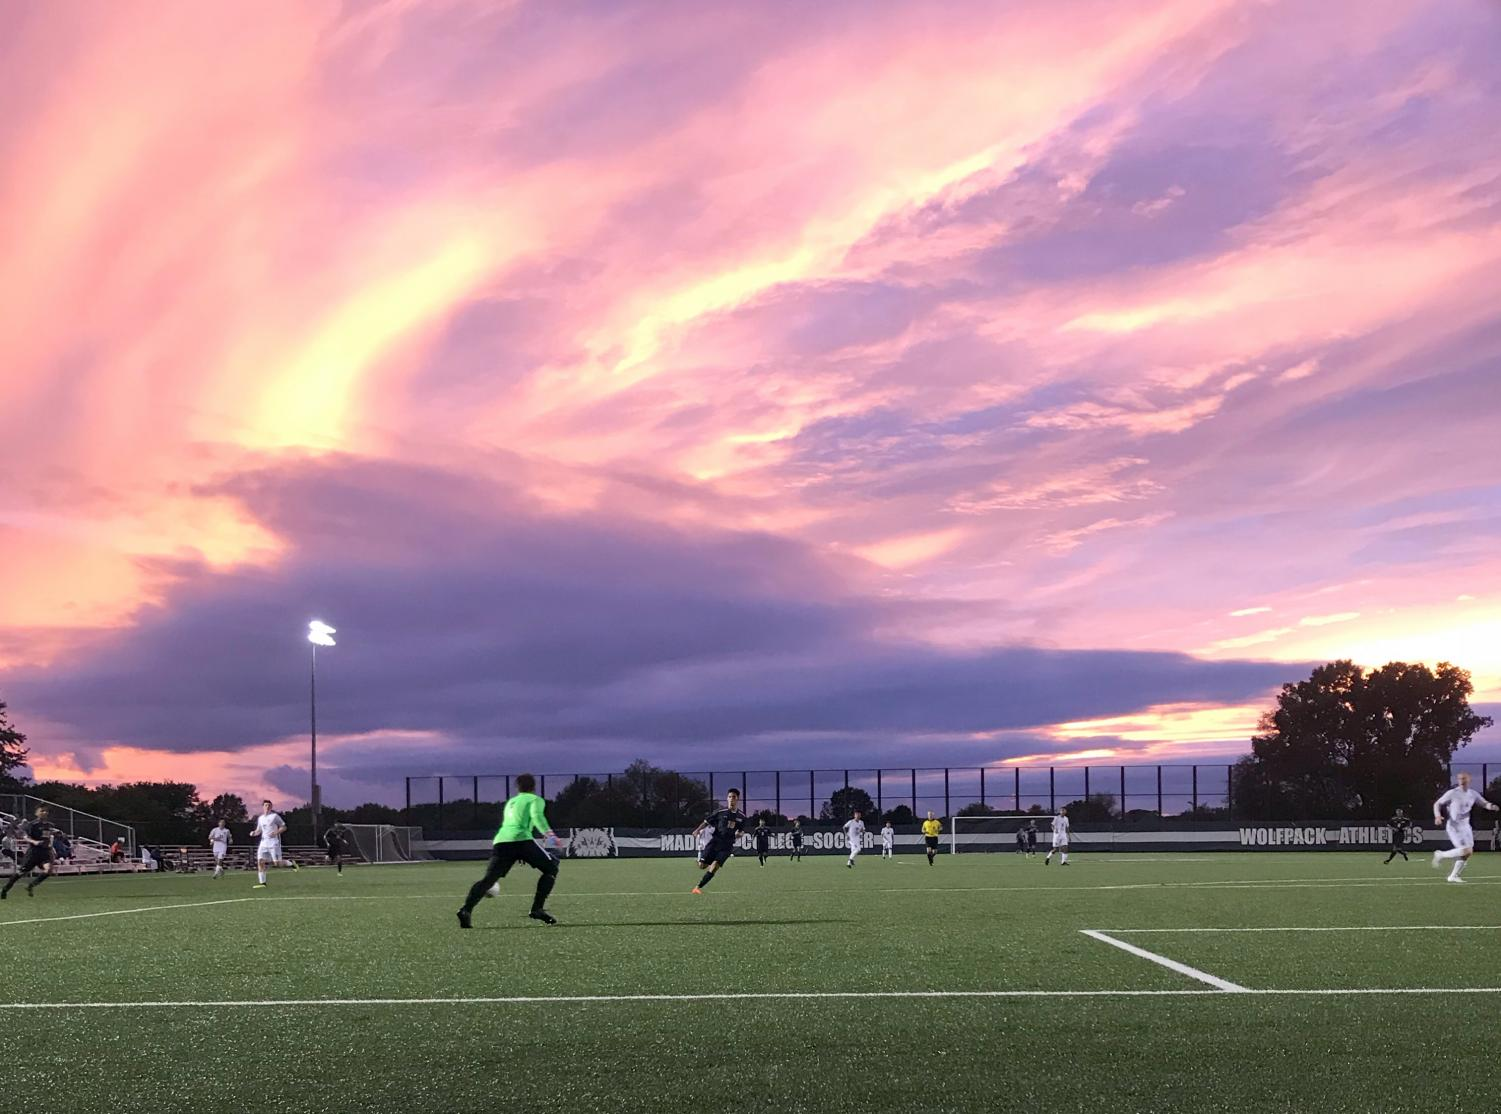 The rainy weather ended just in time for the Madison College men's soccer team's game against Rock Valley College on Sept. 5.